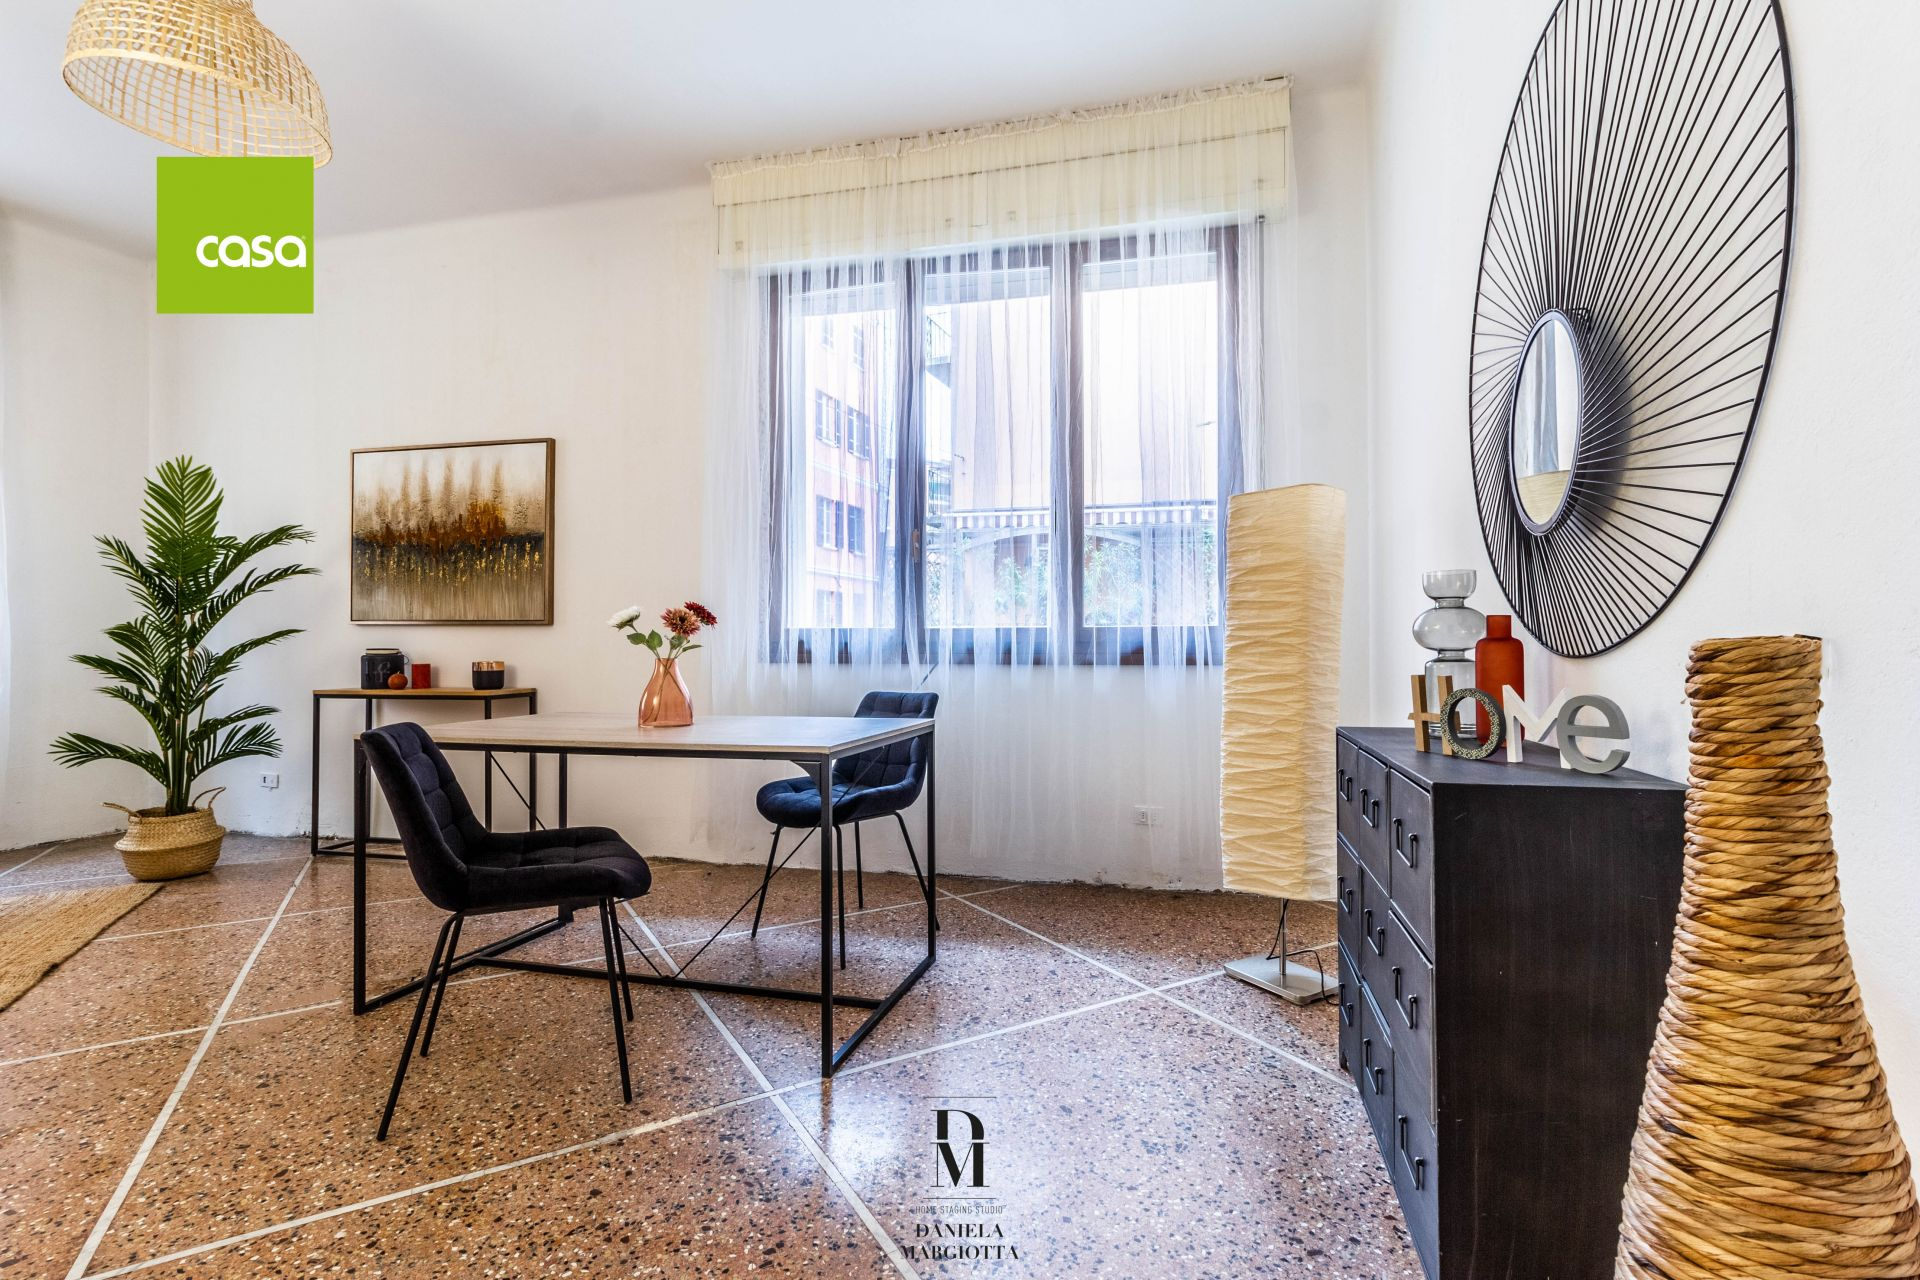 DM Home Staging Studio di Daniela Margiotta